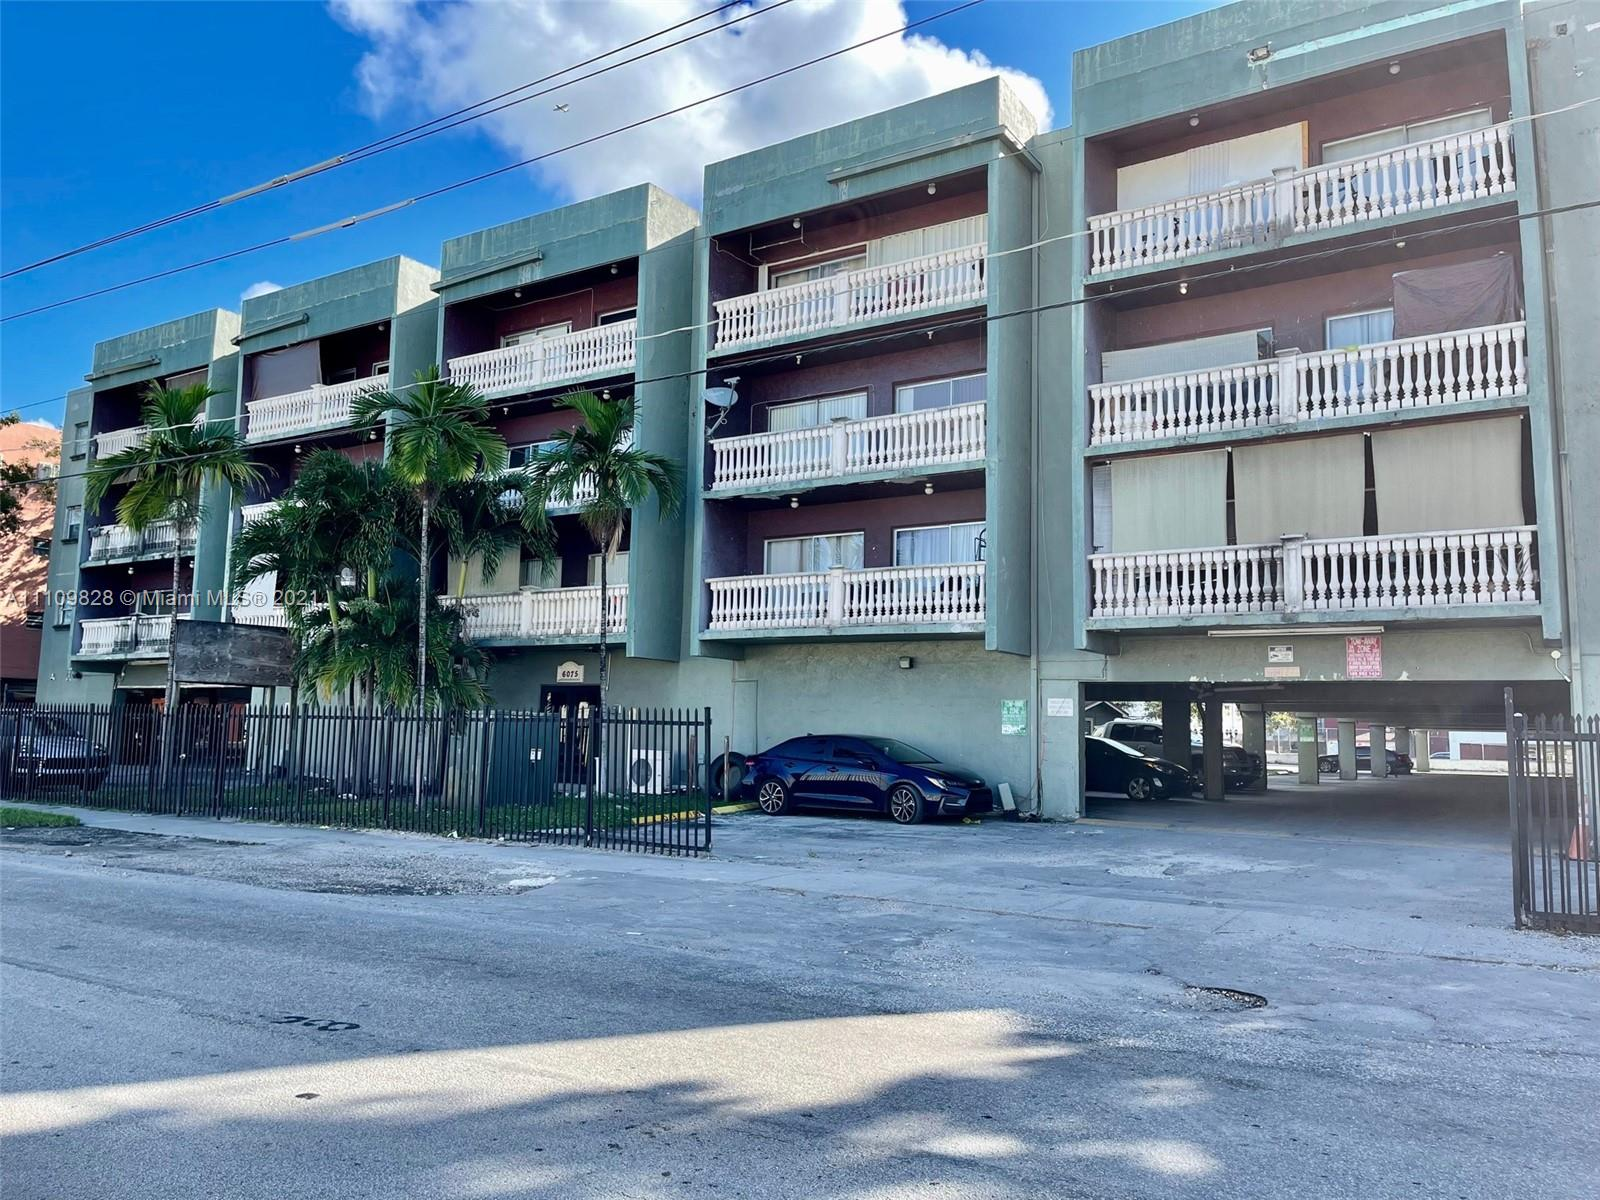 THE PALMETTO RESIDENCE CO Condo,For Rent,THE PALMETTO RESIDENCE CO Brickell,realty,broker,condos near me